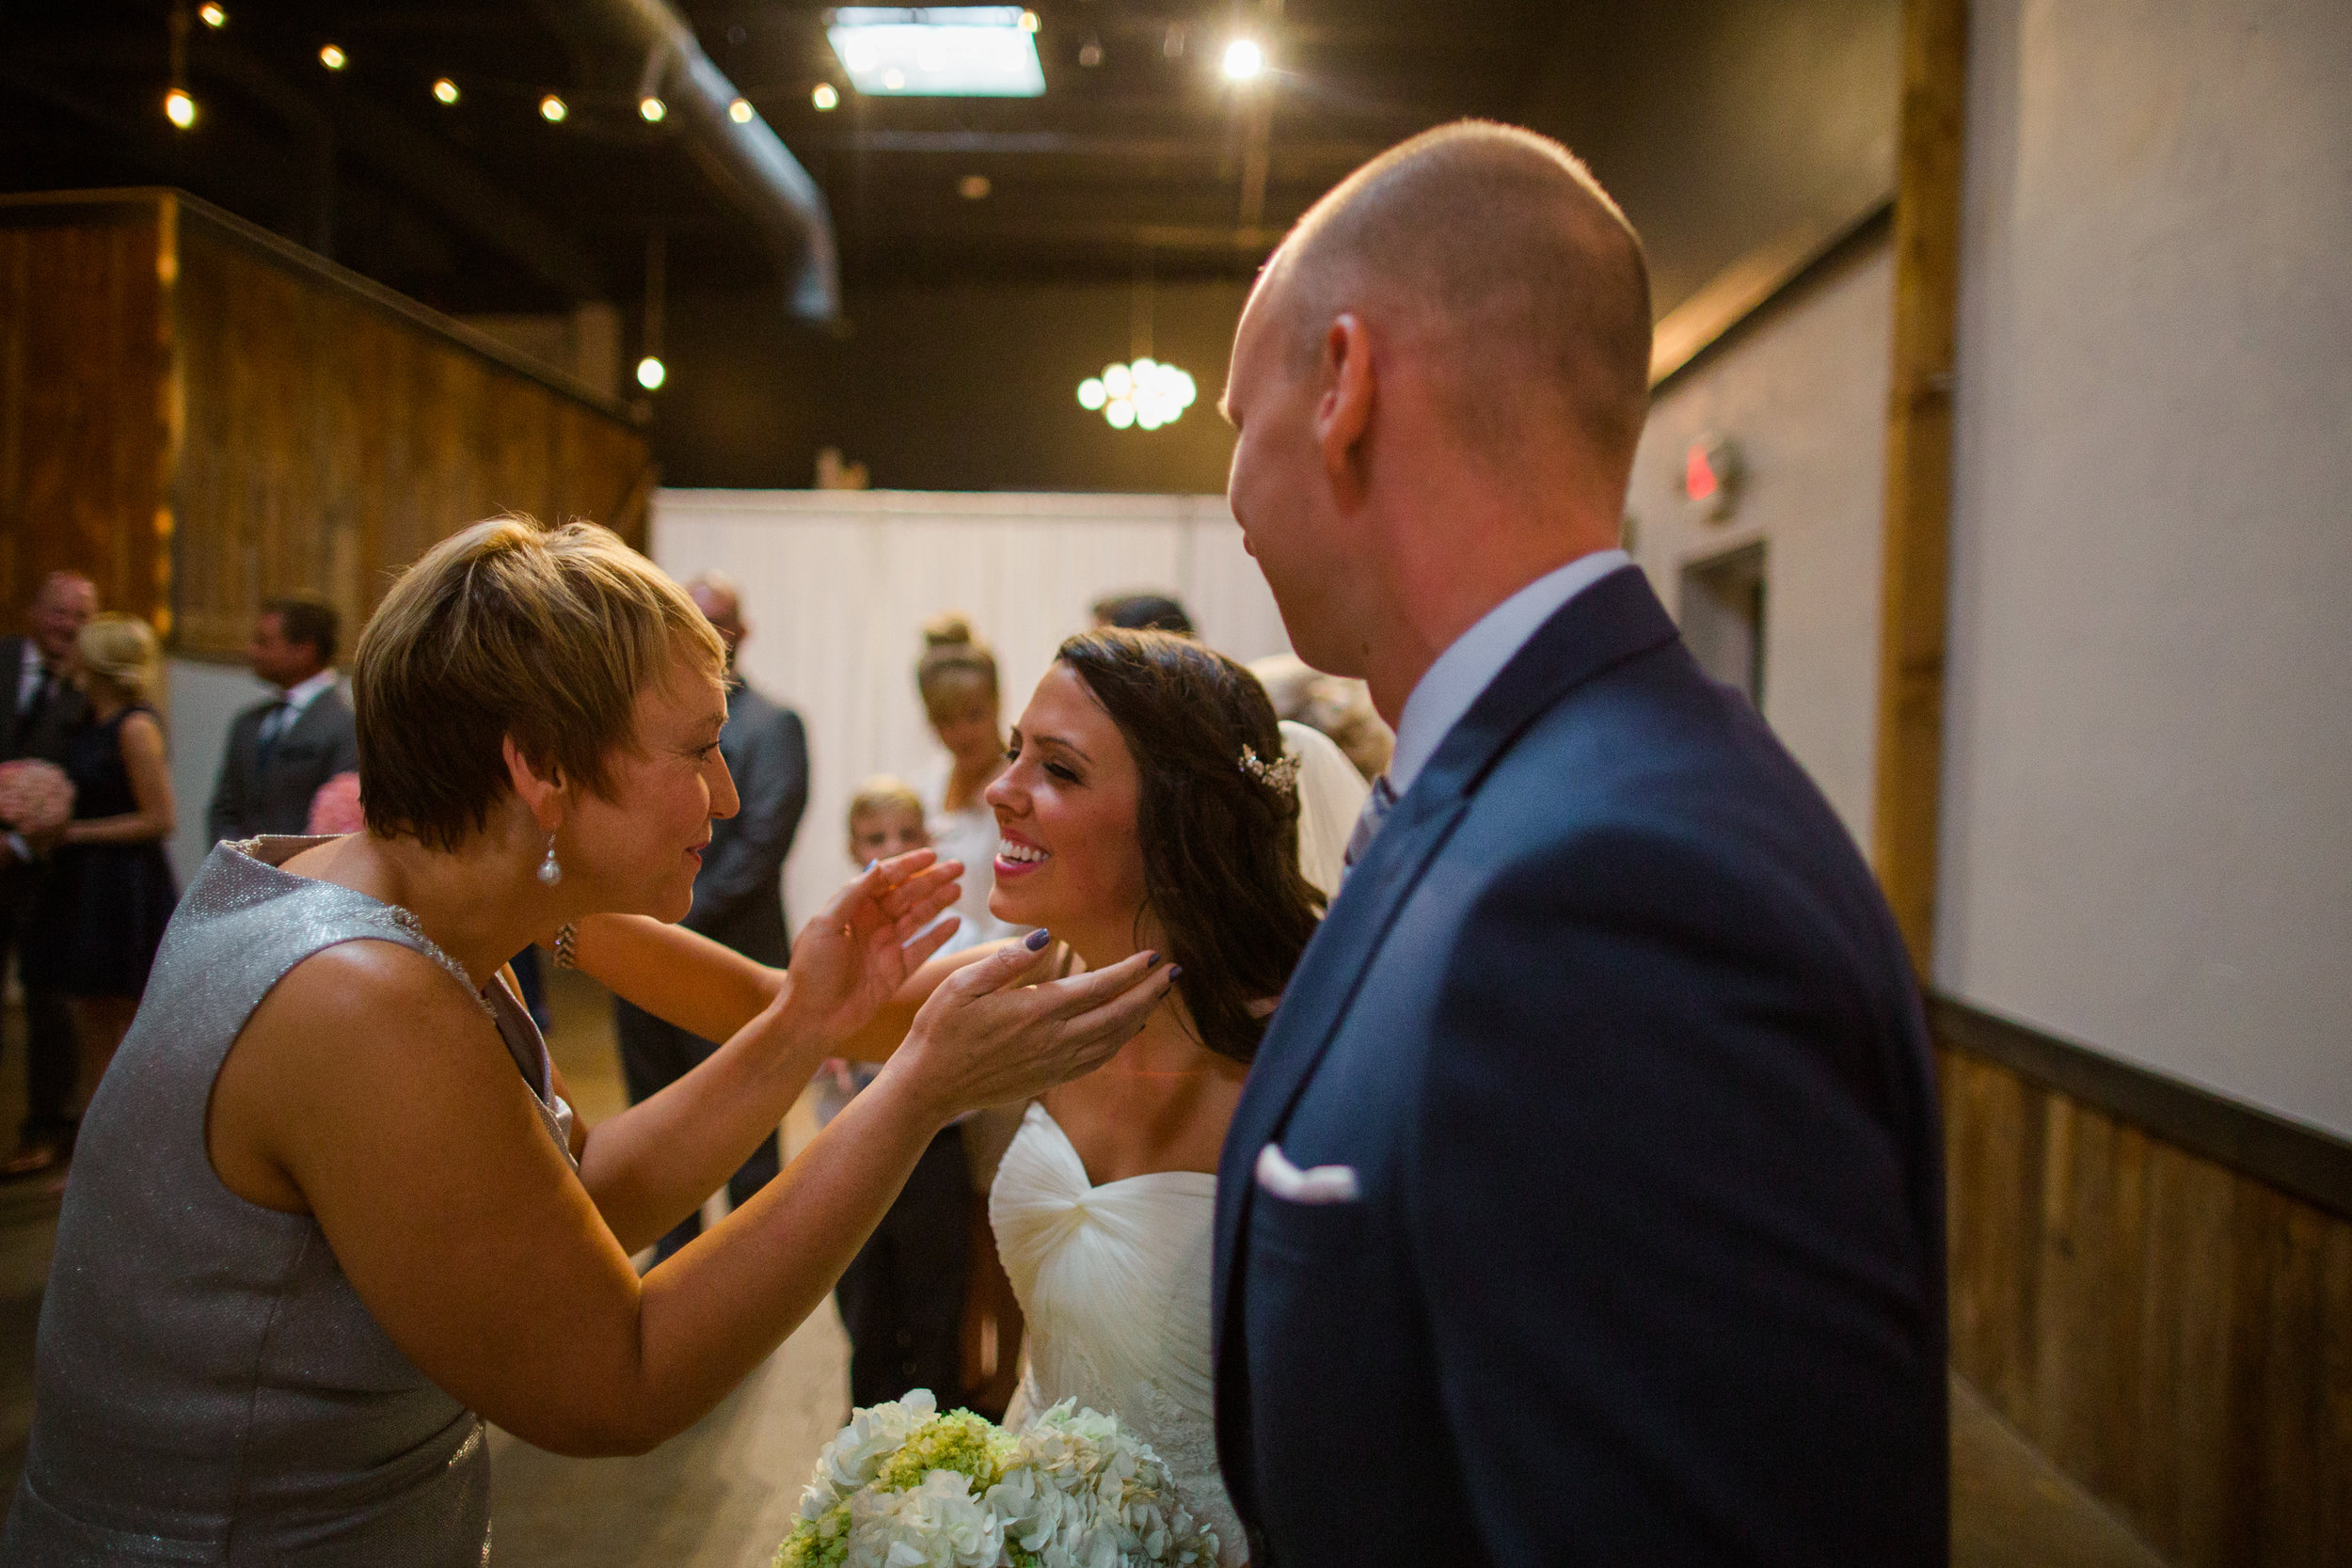 columbus vue wedding photography - jessica love-8.jpg